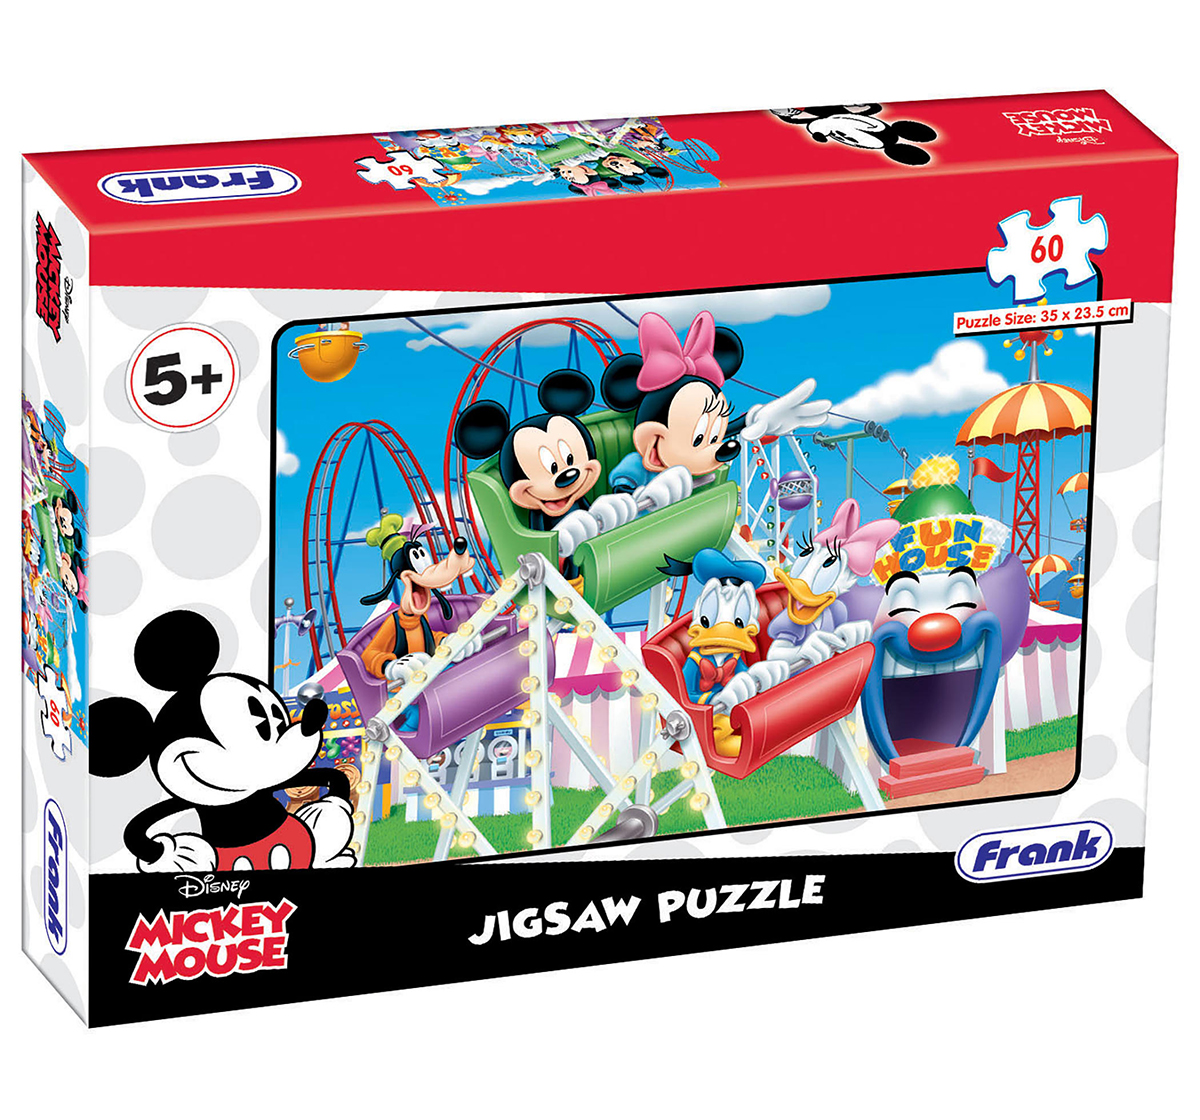 Disney   Disney  Frank Mickey Mouse On Joy Ride Puzzle  for Kids age 5Y+